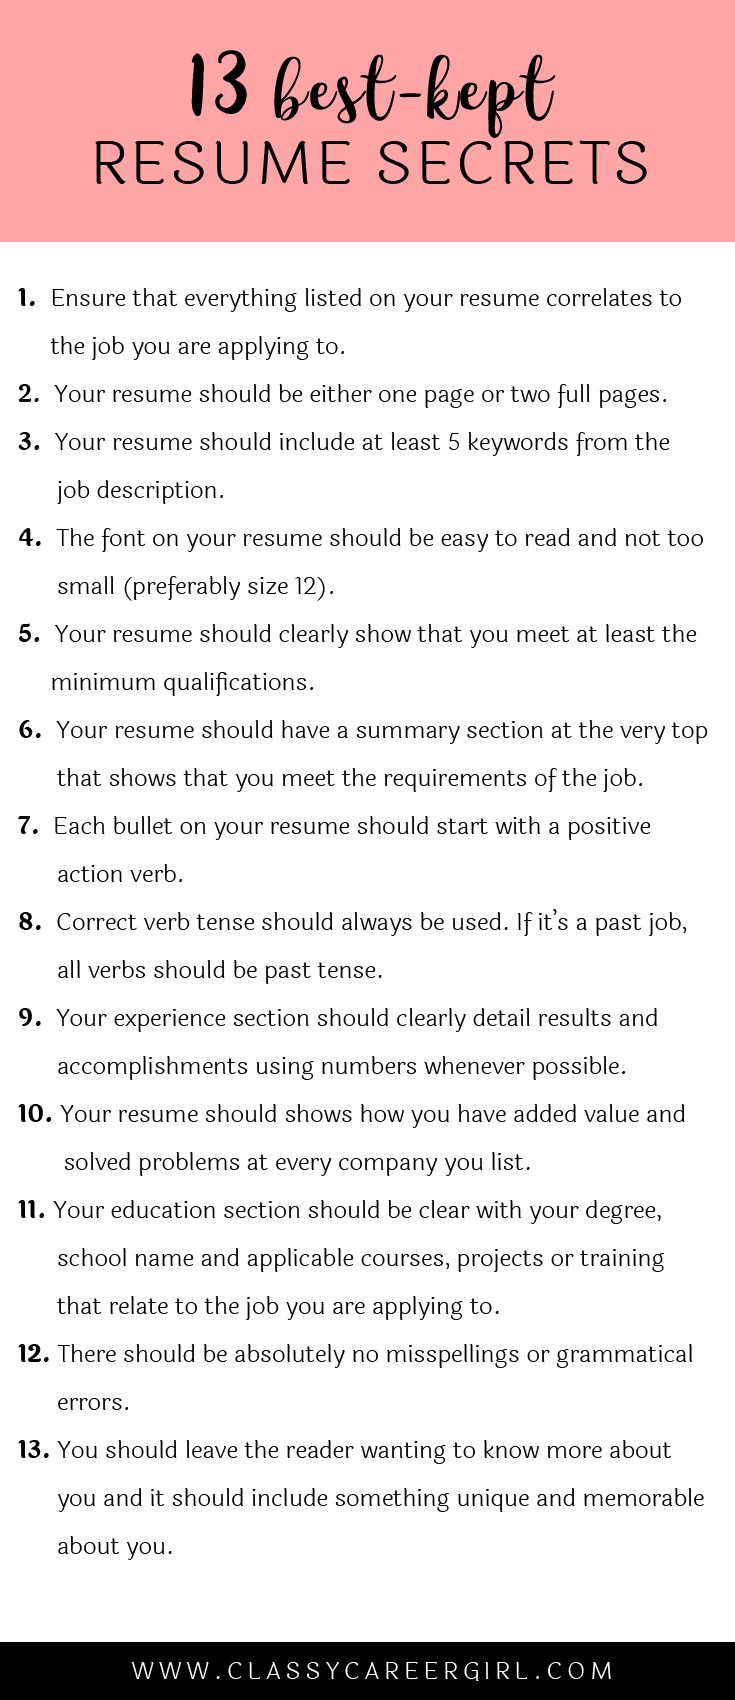 Opposenewapstandardsus  Gorgeous  Ideas About Resume On Pinterest  Cv Format Resume Cv And  With Glamorous Some Hiring Managers Will Toss Your Resume Out If You Dont Know These  With Alluring Tutoring Resume Also Nurse Resume Objective In Addition Chemist Resume And How To Add References To Resume As Well As Executive Assistant Resume Samples Additionally Sample Resume For High School Students From Pinterestcom With Opposenewapstandardsus  Glamorous  Ideas About Resume On Pinterest  Cv Format Resume Cv And  With Alluring Some Hiring Managers Will Toss Your Resume Out If You Dont Know These  And Gorgeous Tutoring Resume Also Nurse Resume Objective In Addition Chemist Resume From Pinterestcom